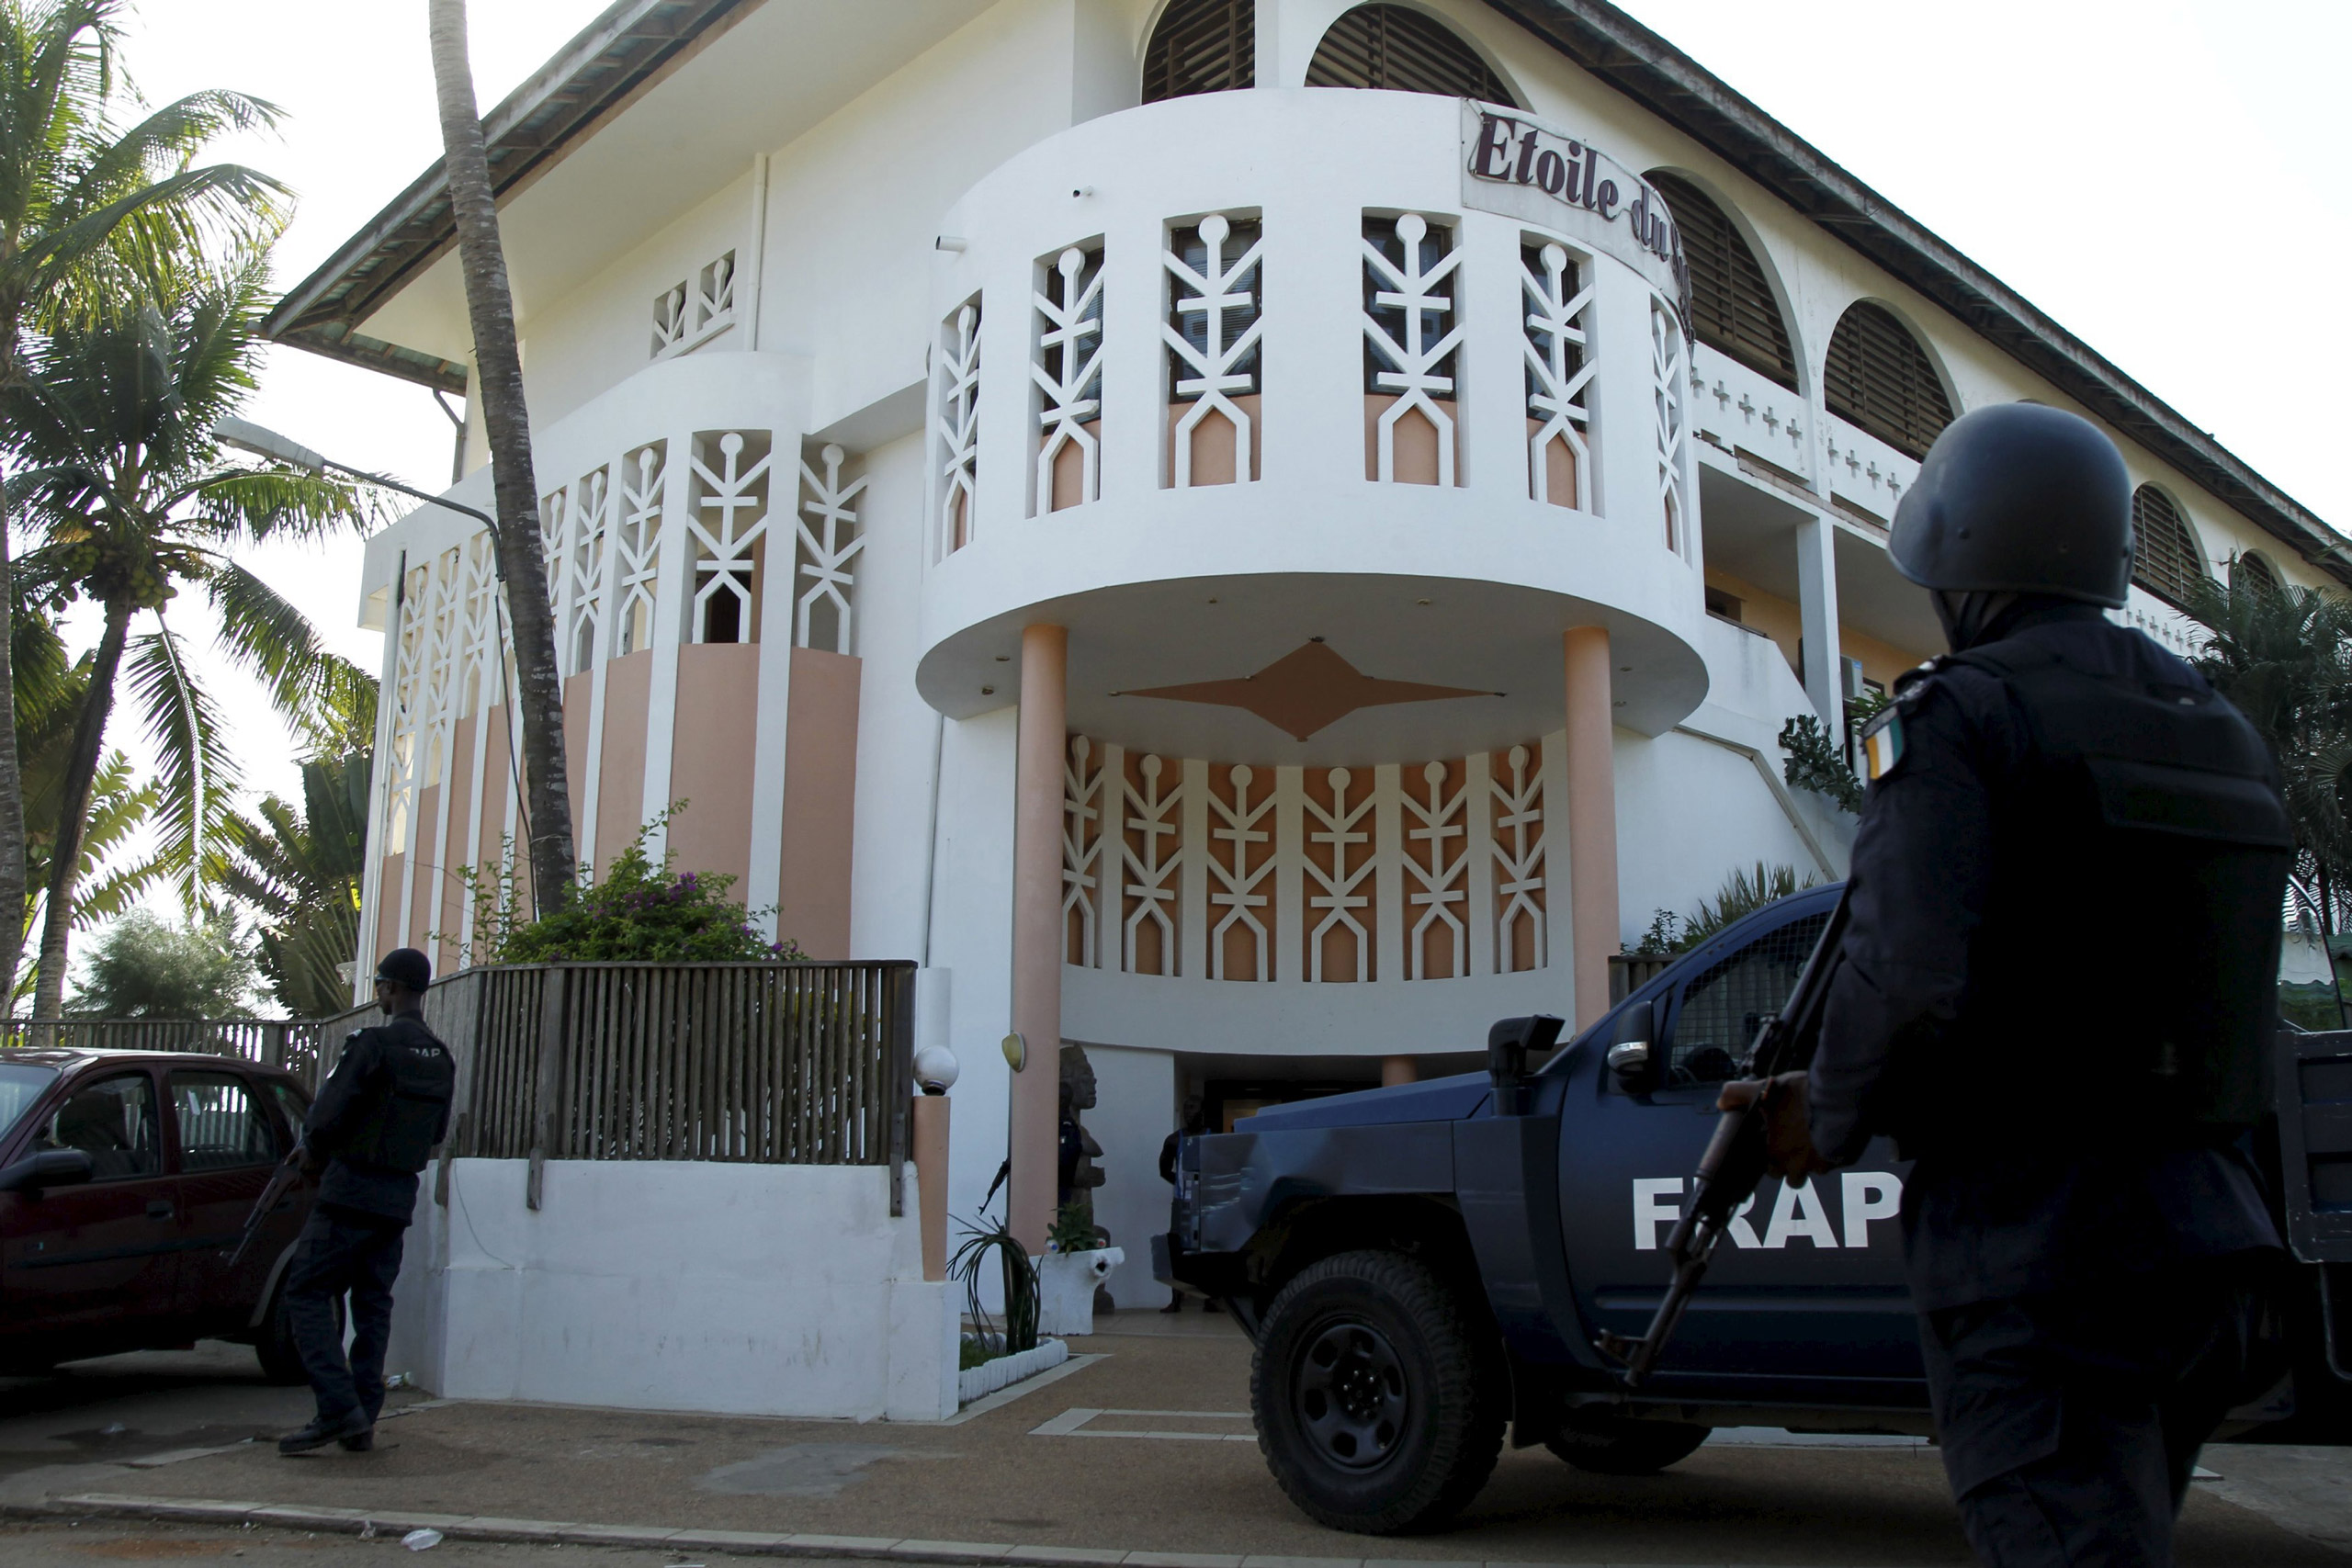 Soldiers stand guard in front of the Etoile du Sud hotel after the attacks in Grand-Bassam, Ivory Coast, on March 13, 2016.